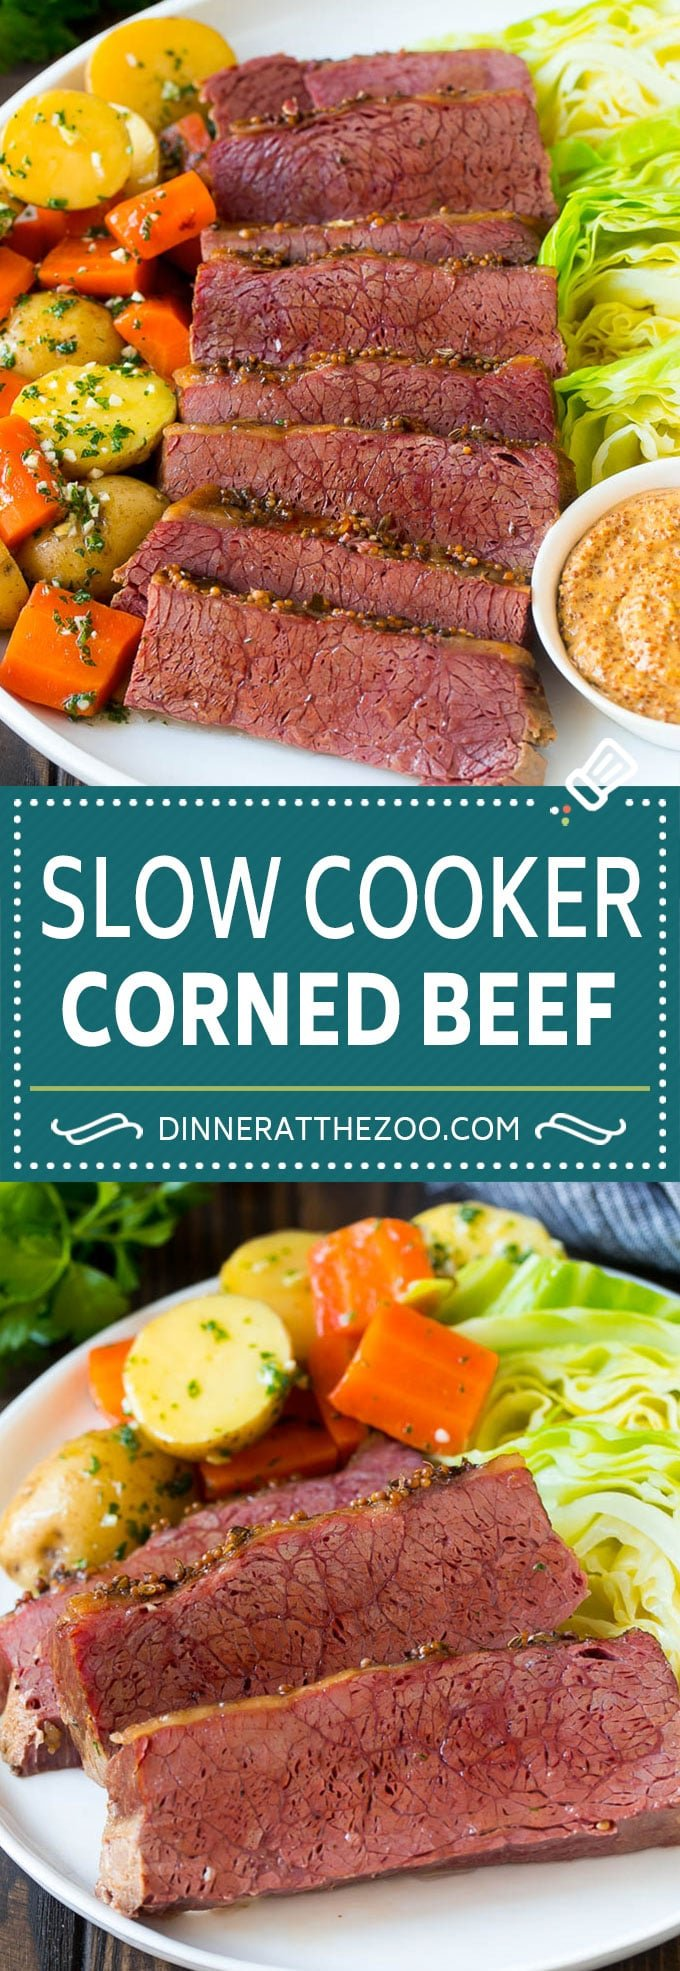 Slow Cooker Corned Beef Recipe | Crock Pot Corned Beef | Corned Beef and Cabbage #beef #cornedbeef #cabbage #potatoes #carrots #stpatricksday #irish #dinneratthezoo